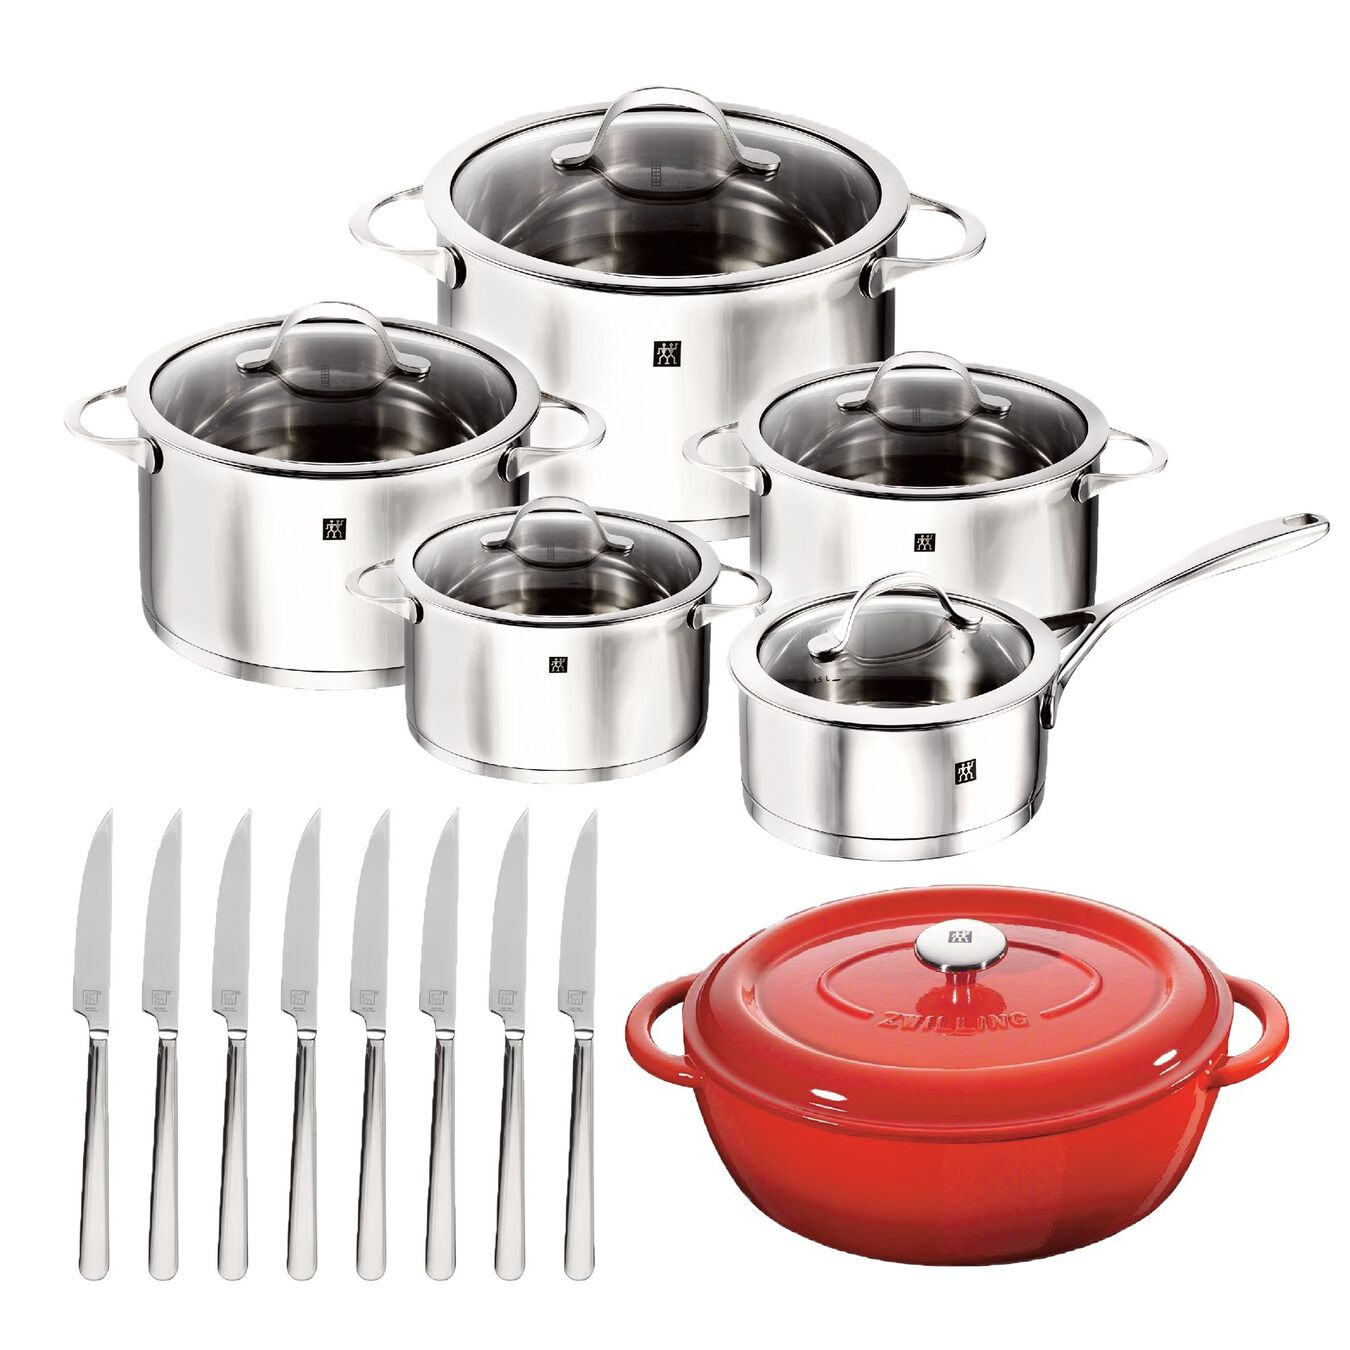 10 PIECE COOKWARE SET WITH BONUS CAST IRON FRENCH OVEN AND 8-PC STEAK KNIVES,,large 1